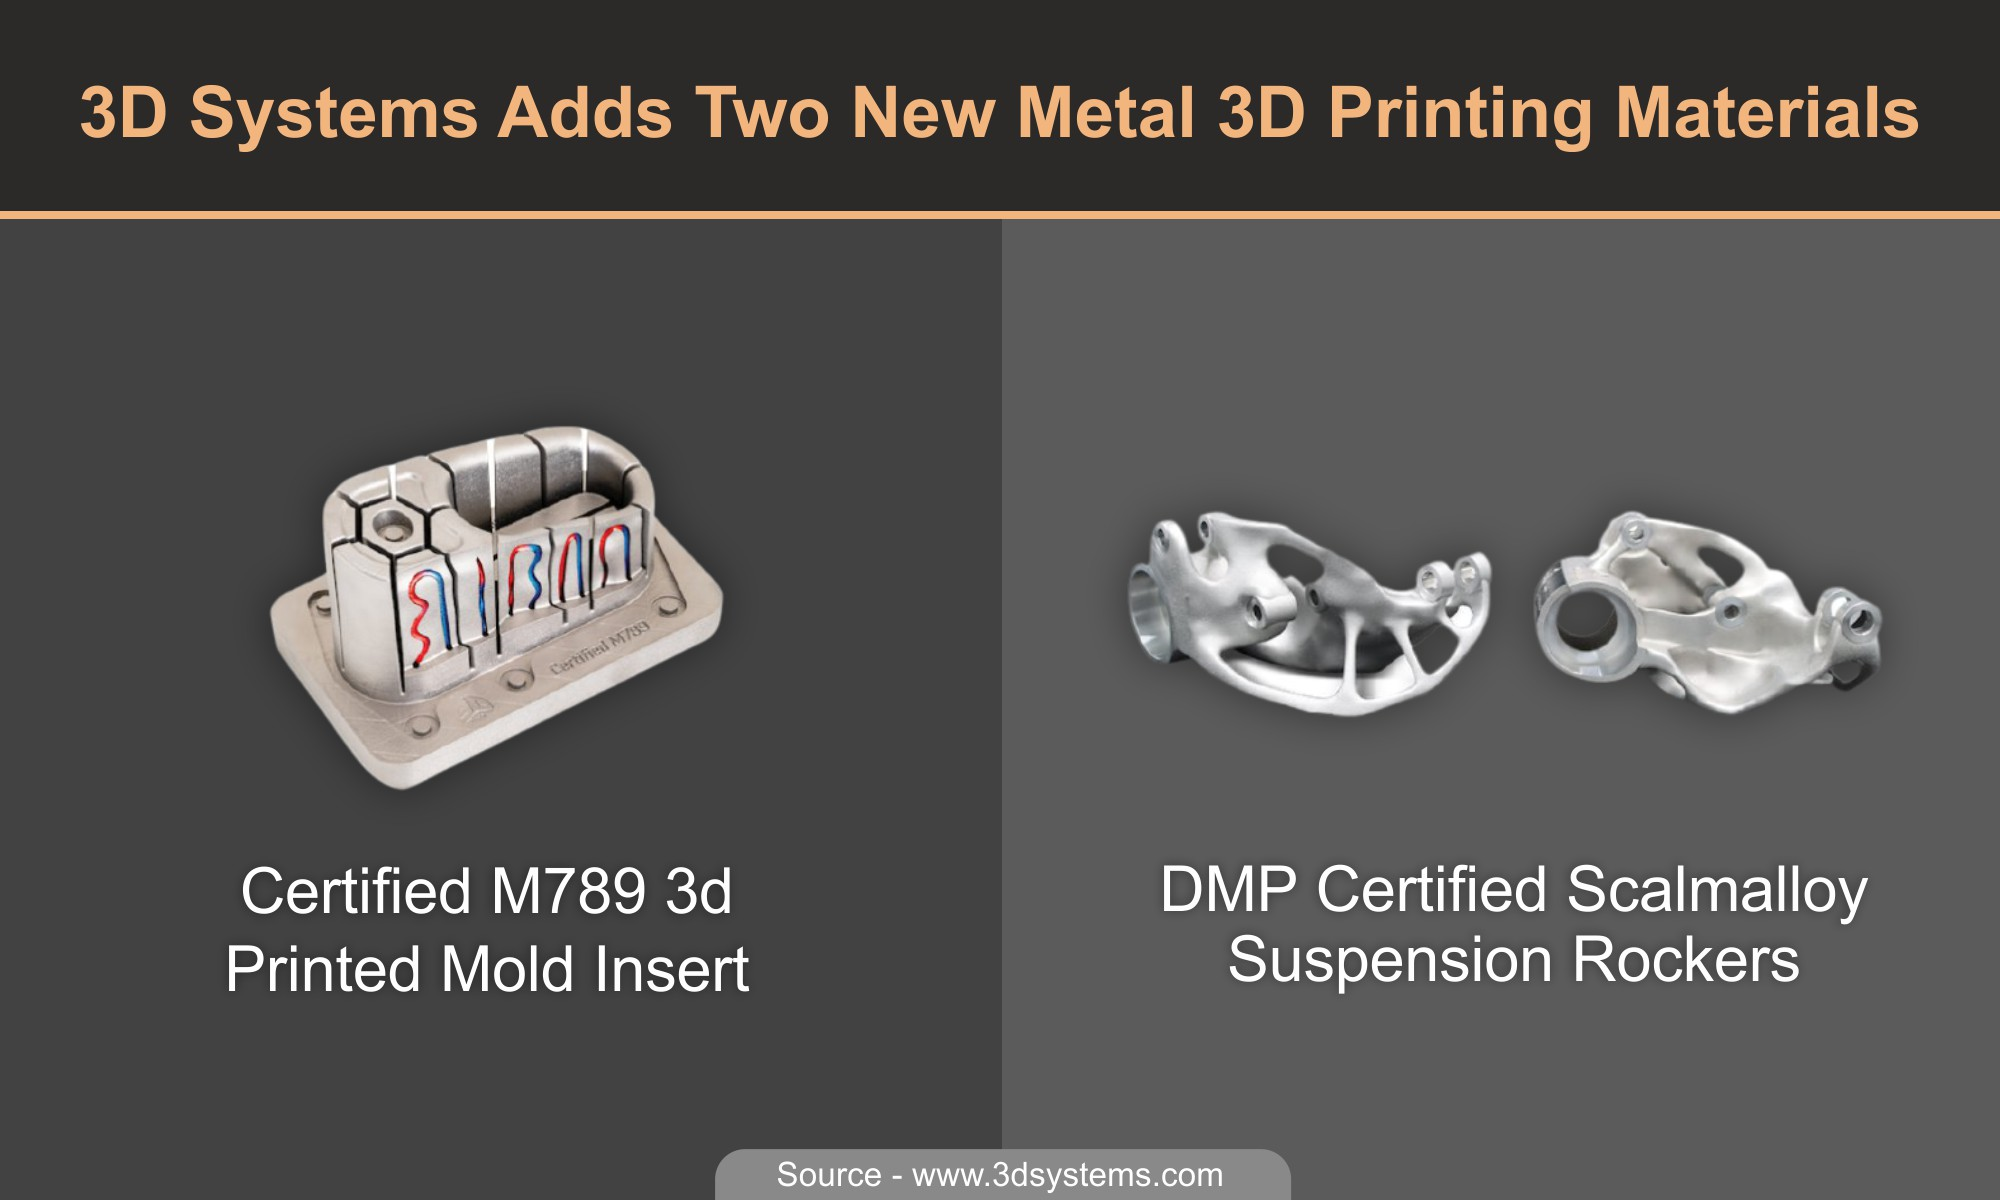 3D Systems adds two new metal 3D printing materials